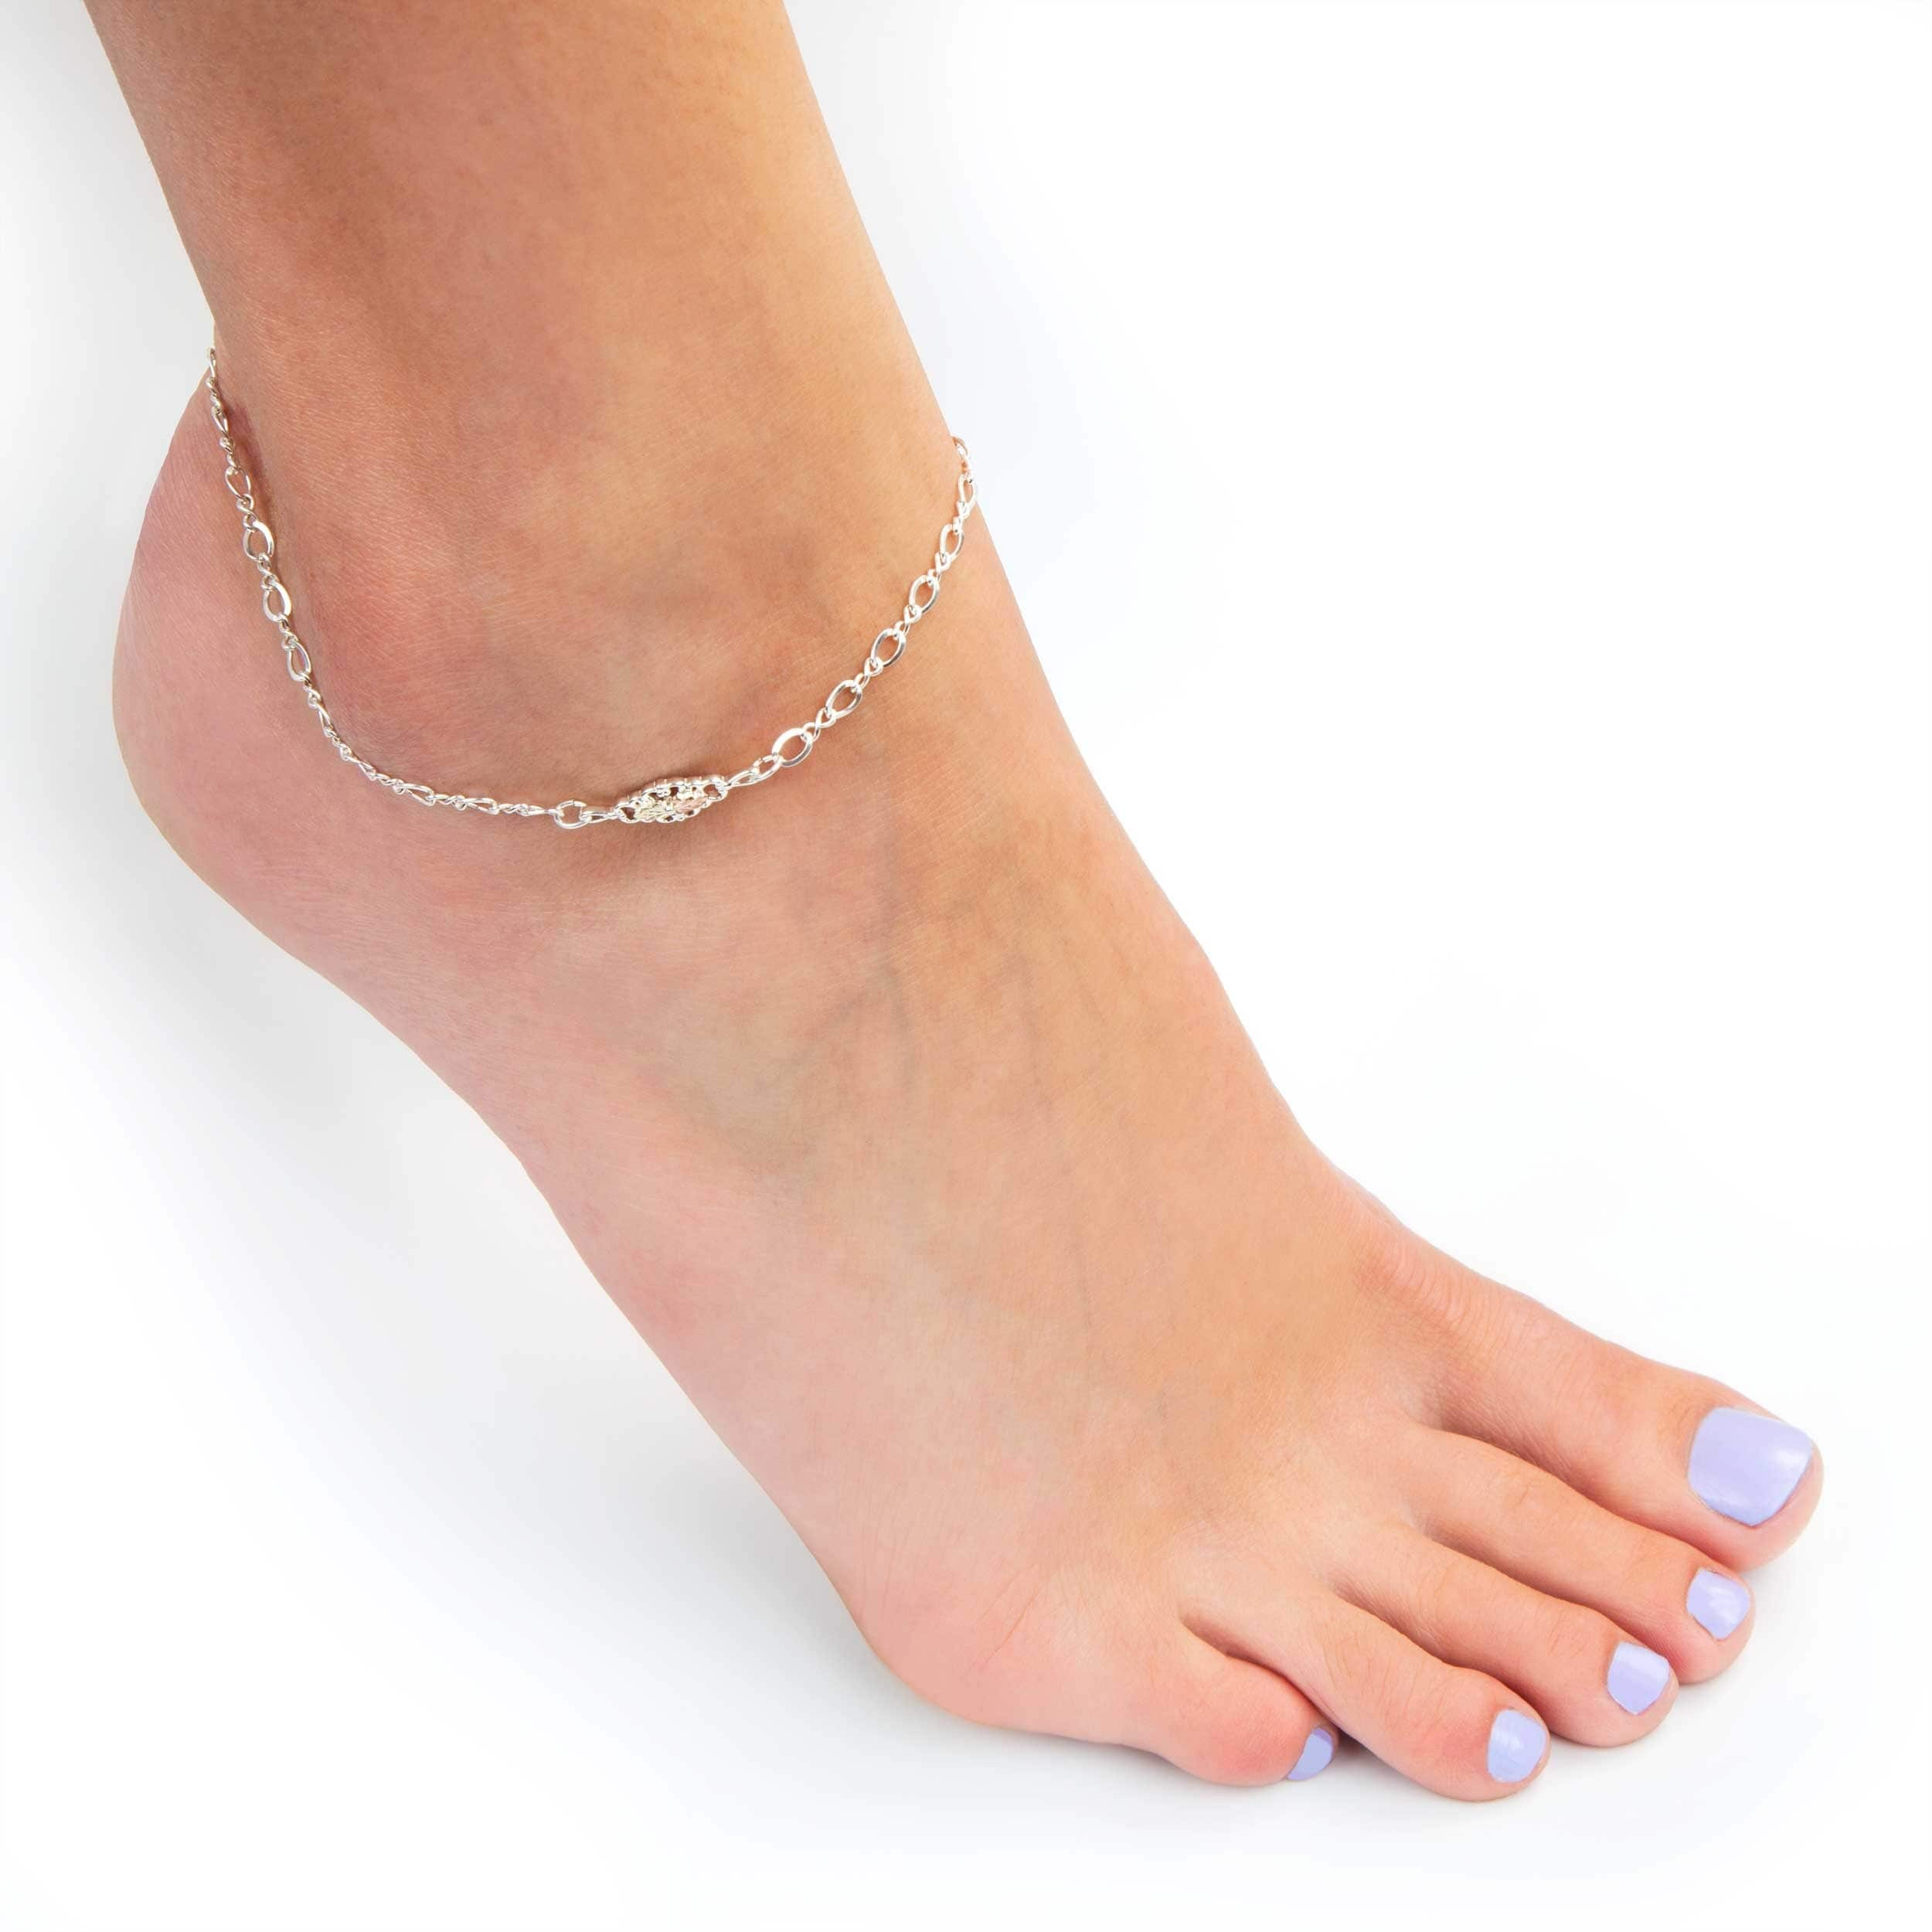 meira star whitegold t diamond white women anklet s bracelet jewelry lyst and moon ankle yellow chain gold